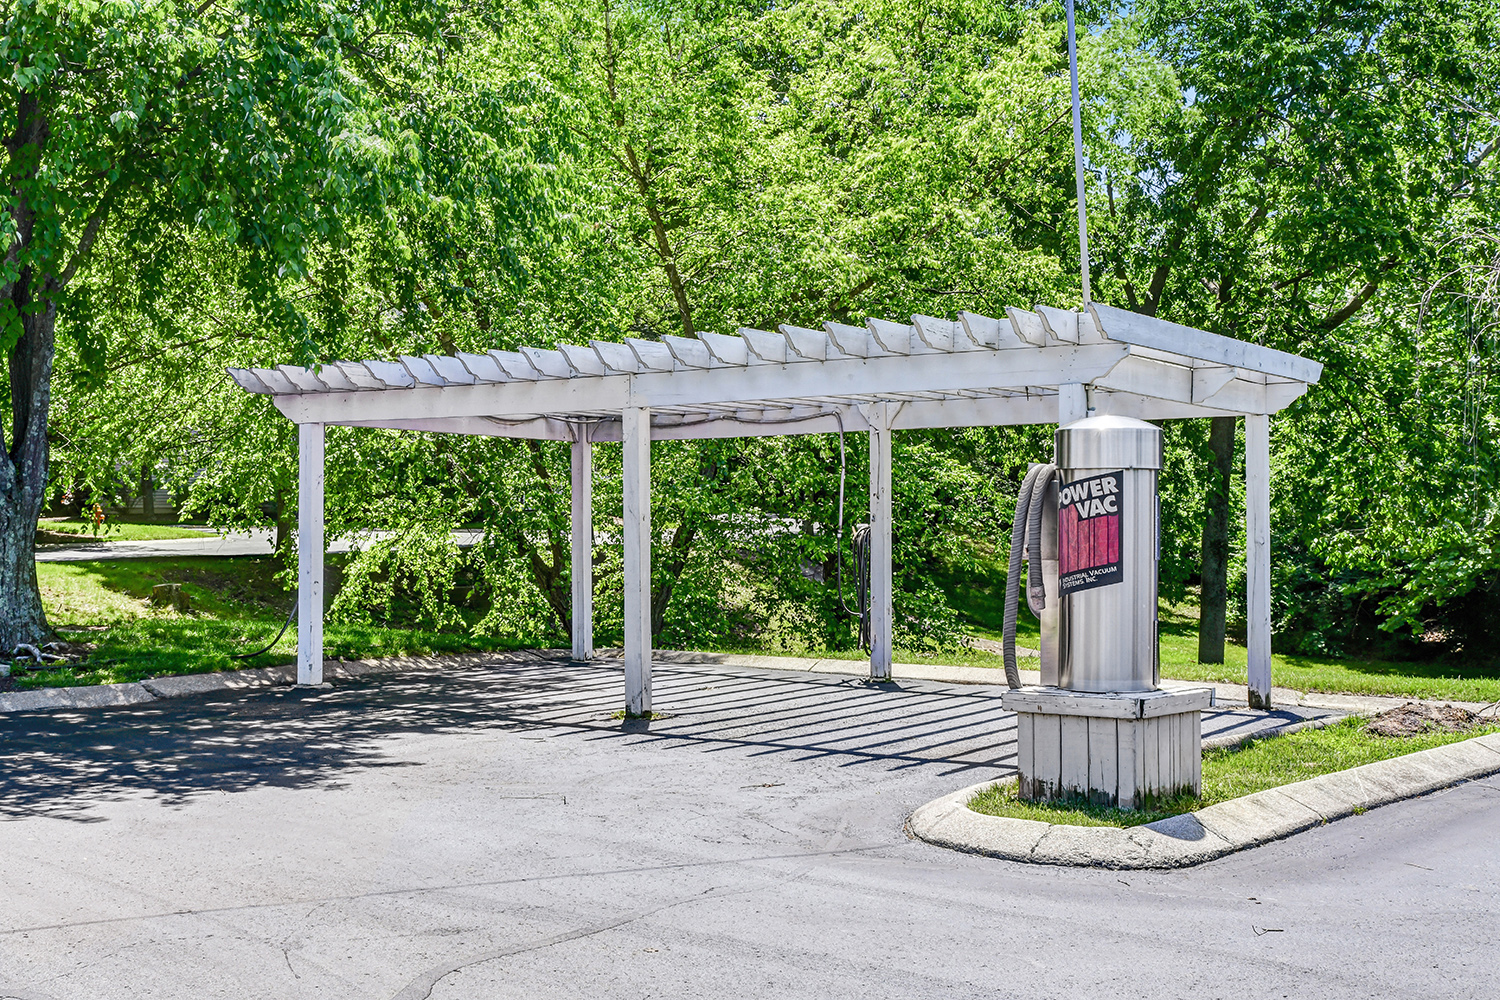 Car Wash Station at Patchen Oaks Apartments, Kentucky